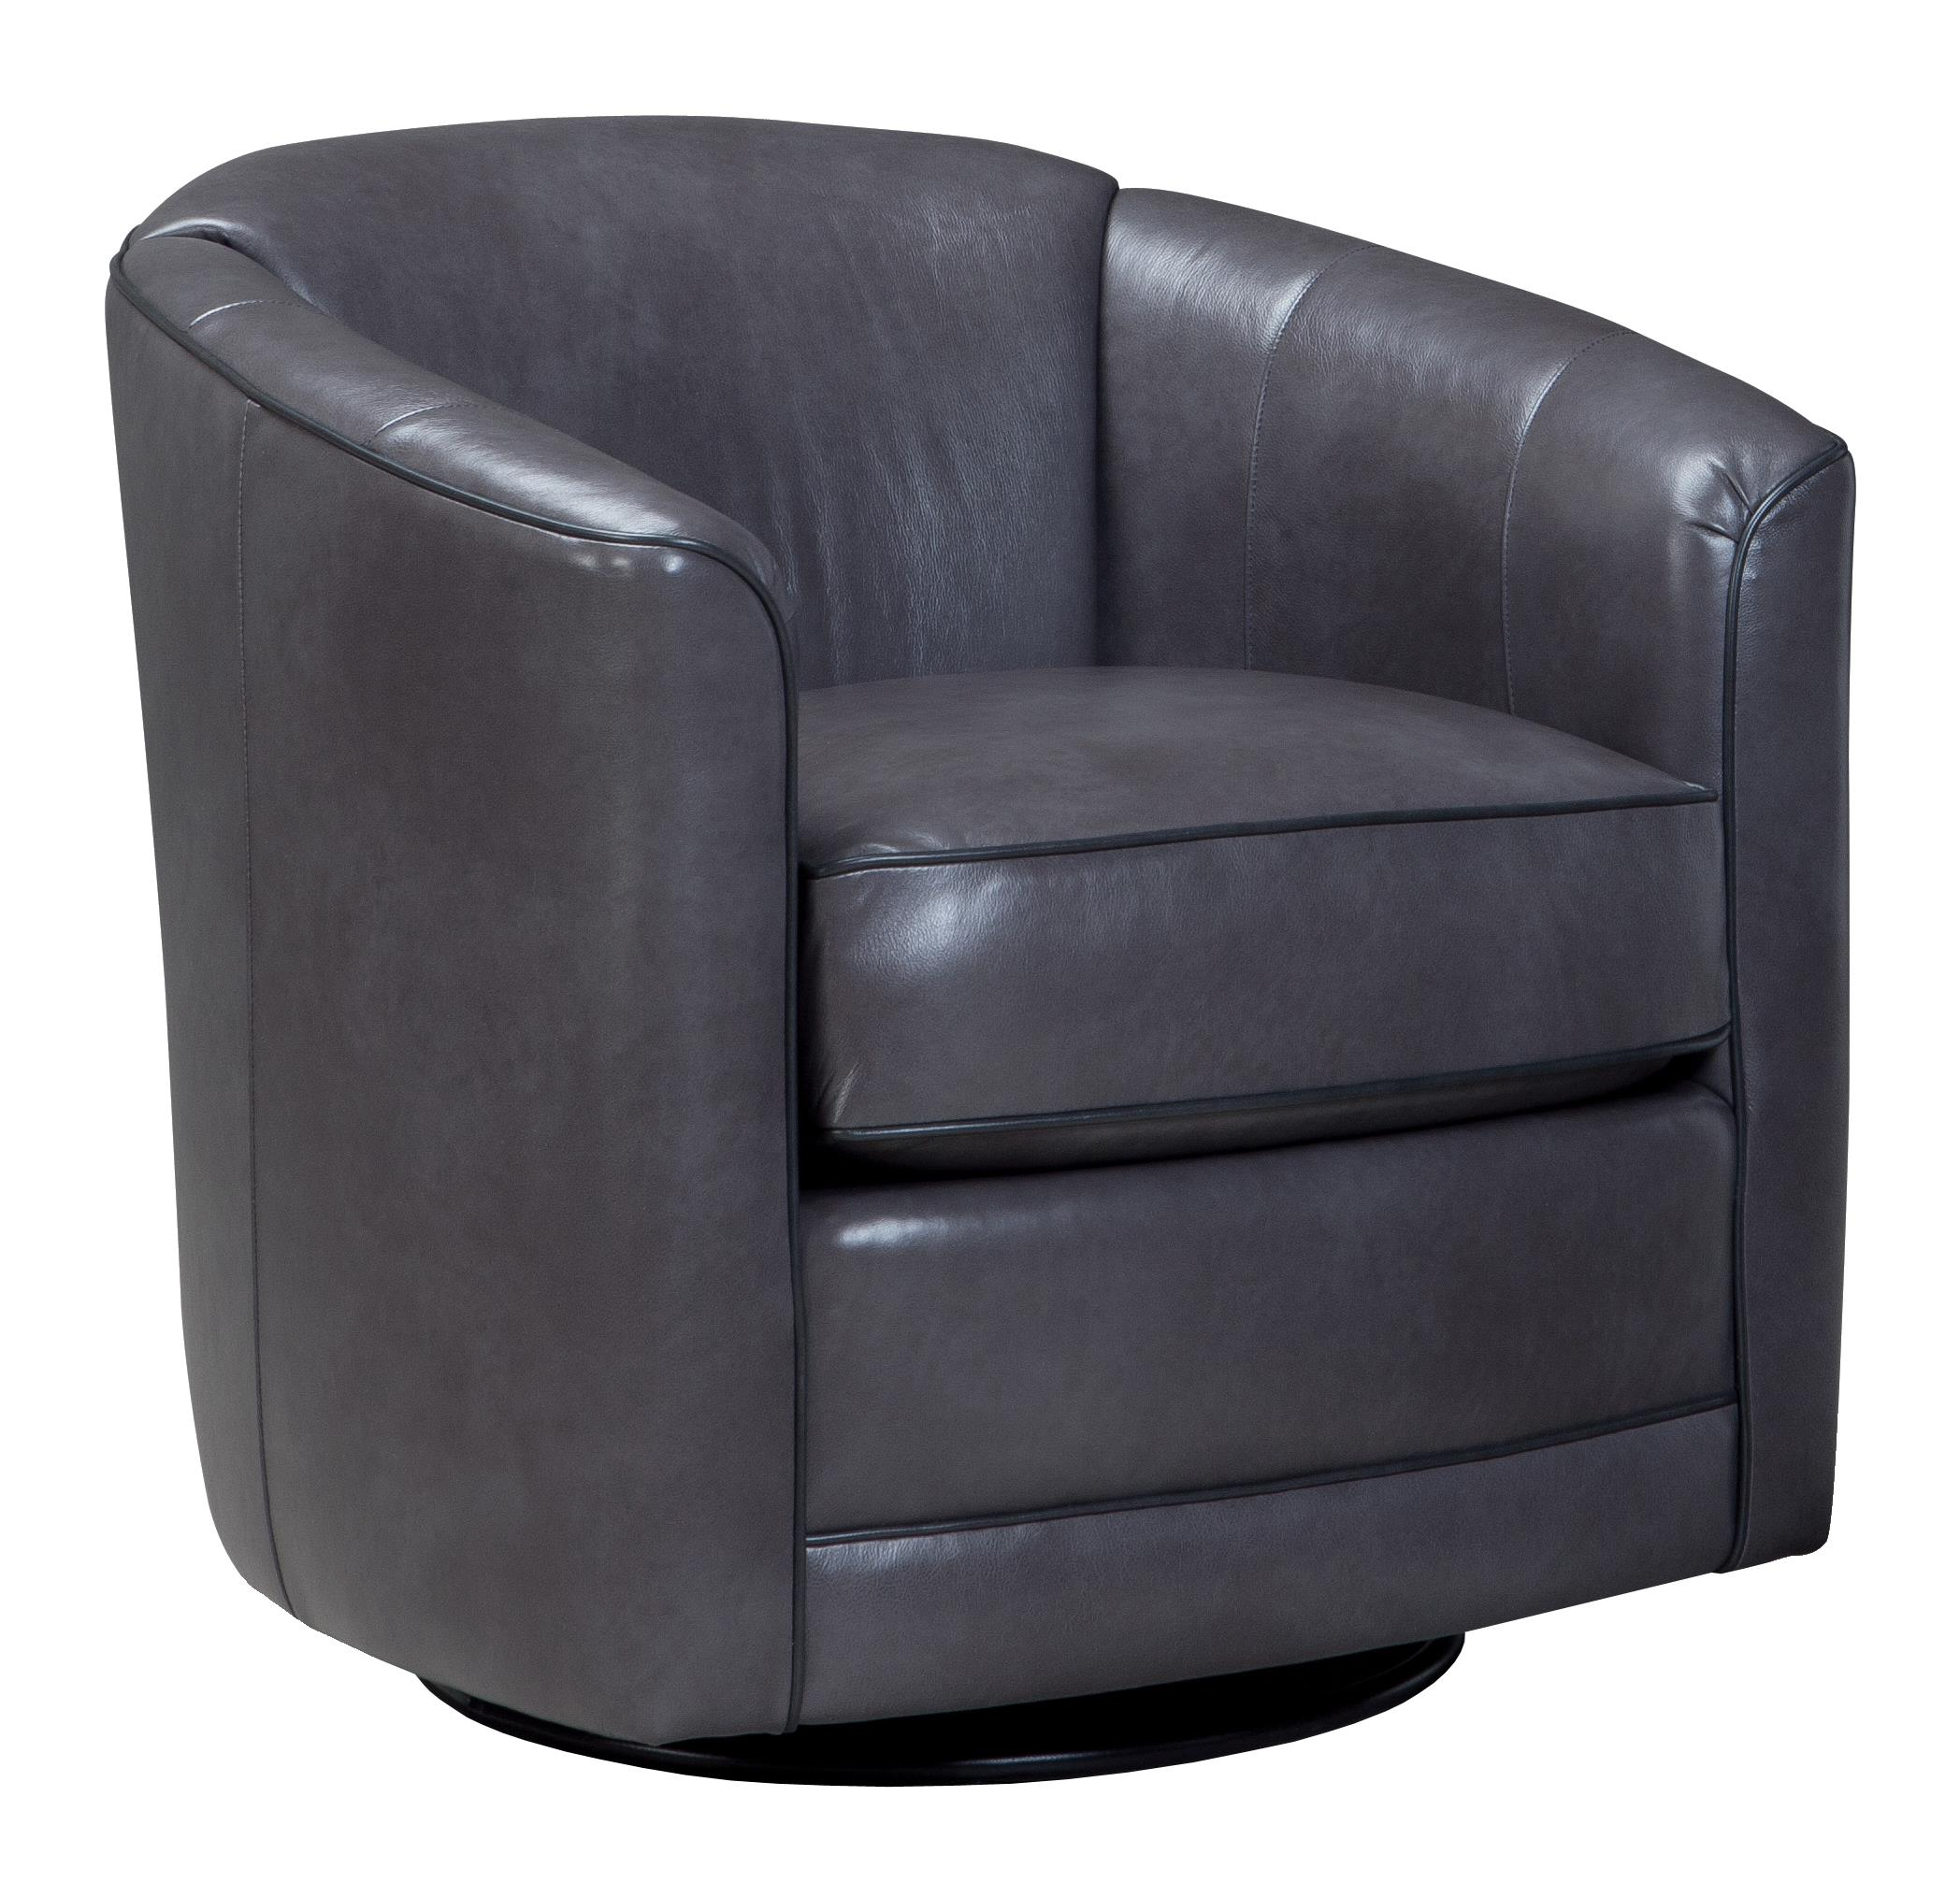 Barrel Chair Swivel Swivel Chair With Barrel Back